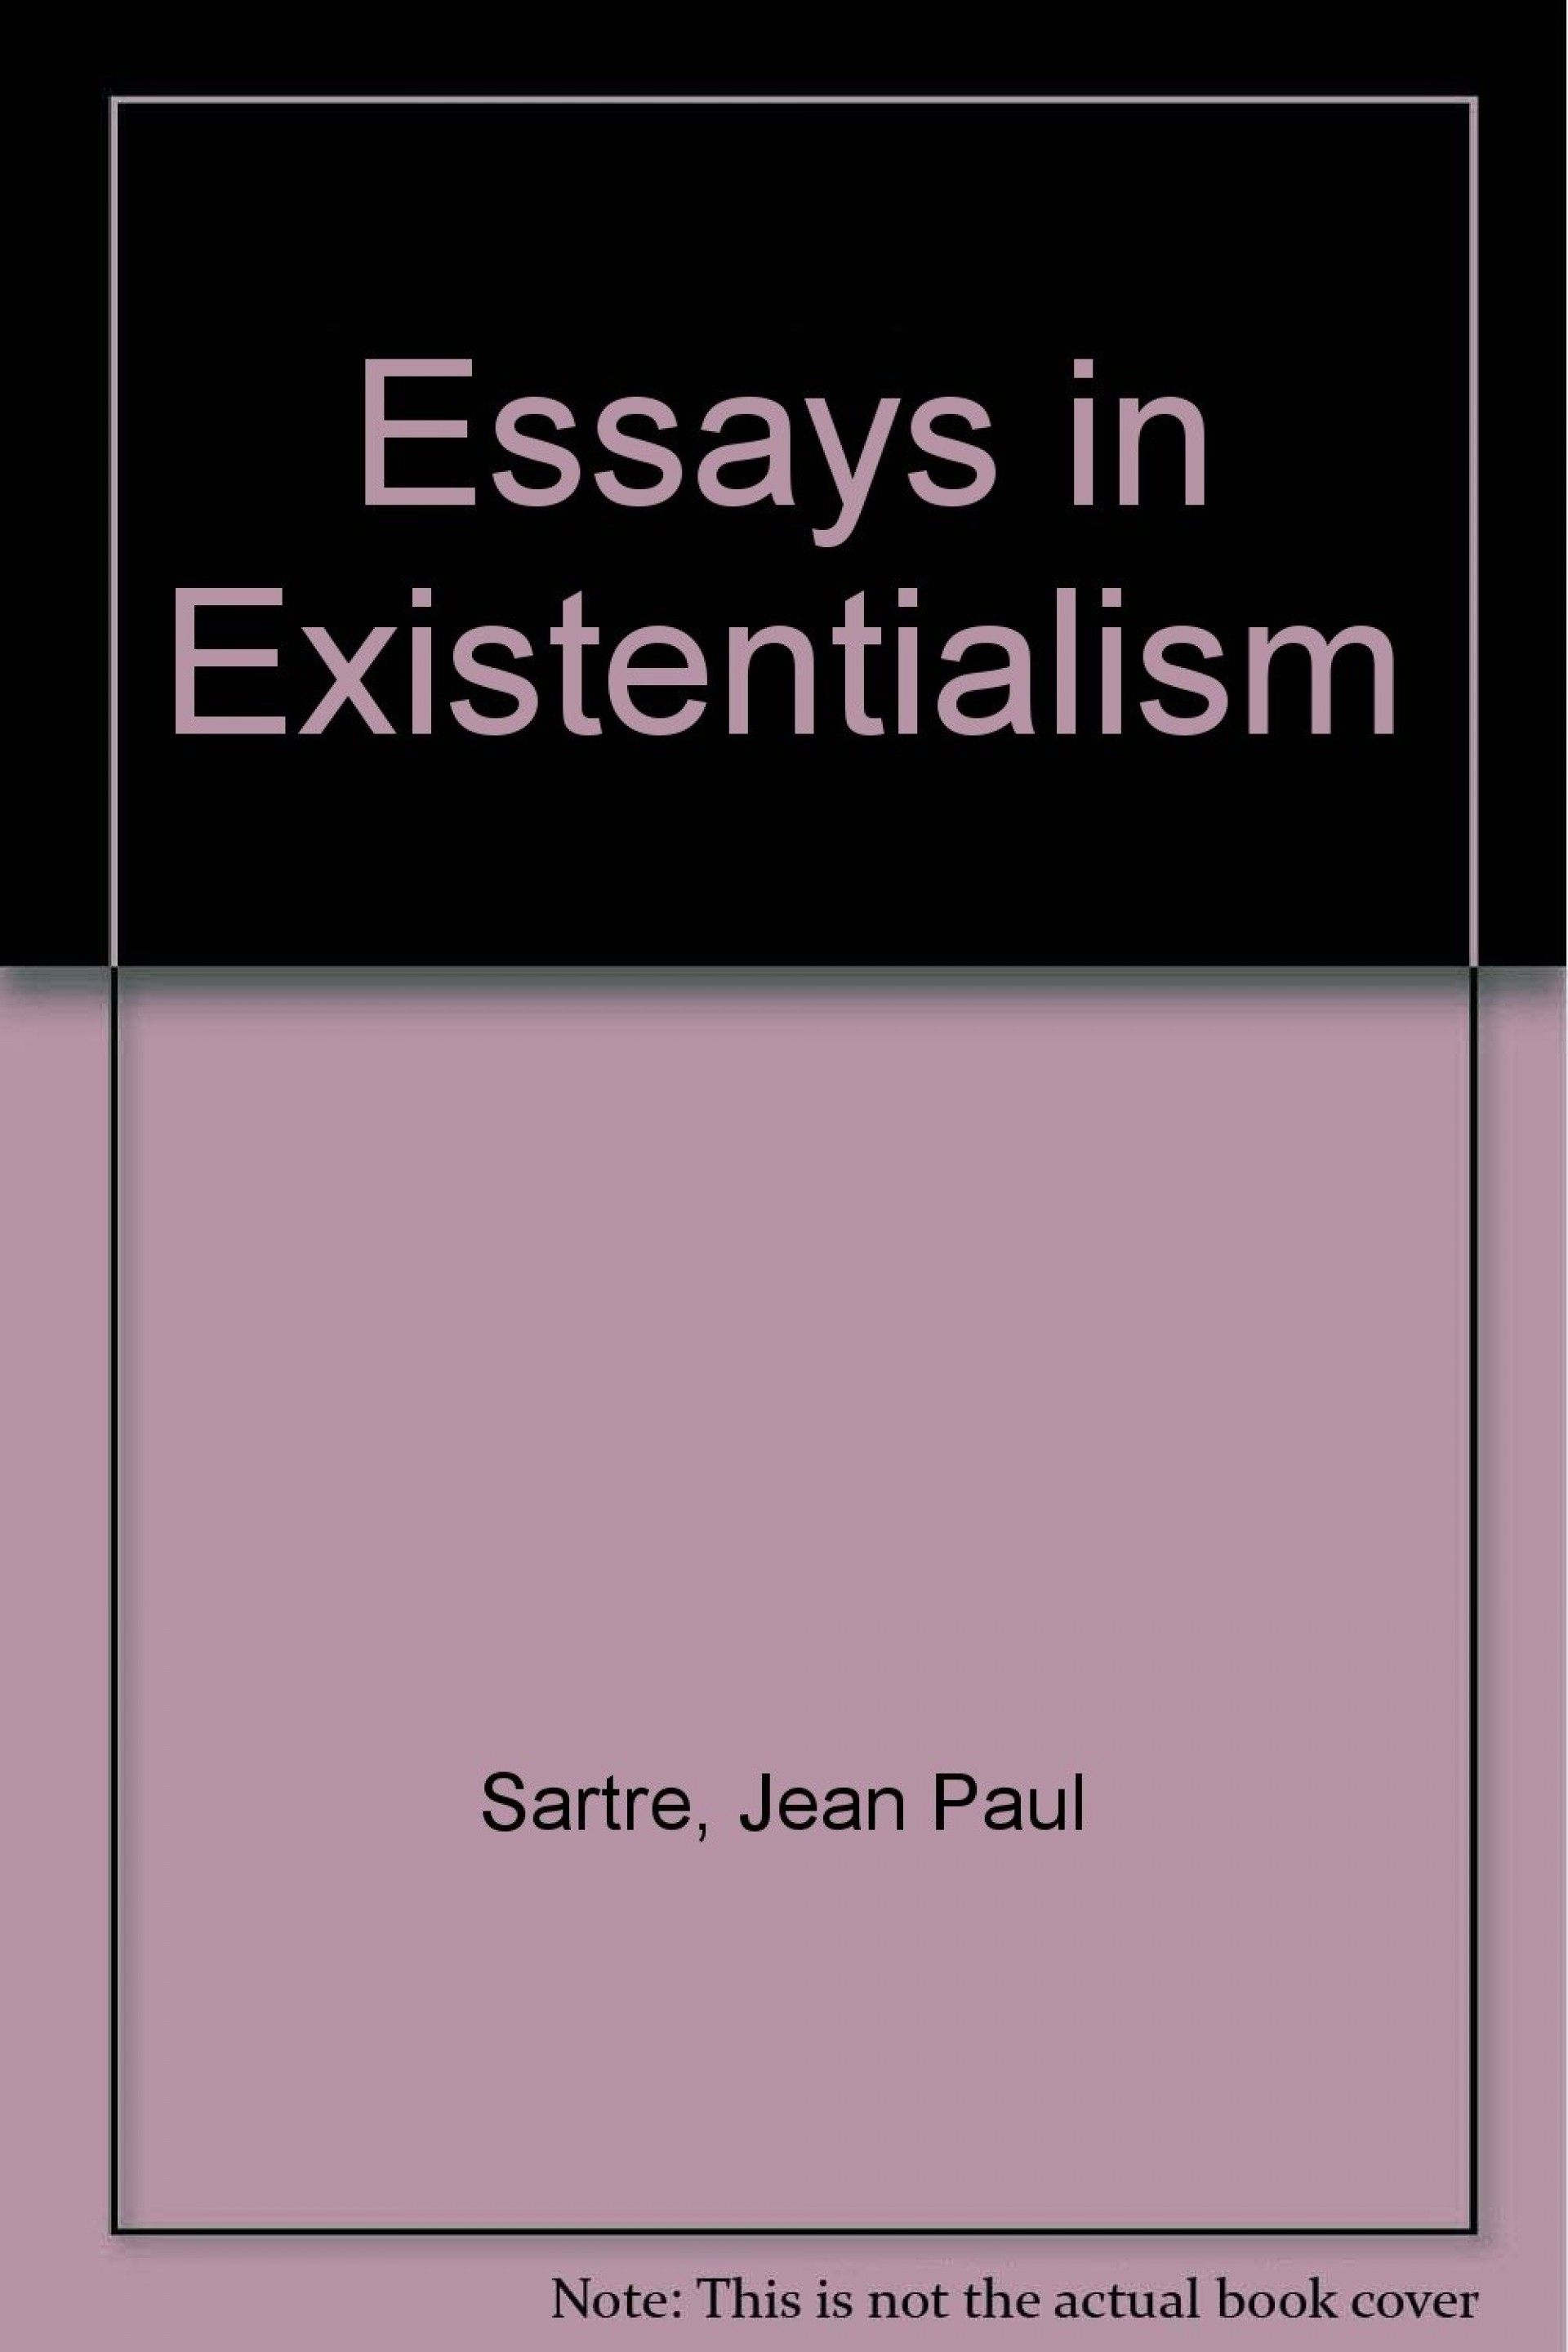 002 61qllswwwgl Essay Example Essays In Outstanding Existentialism Pdf Sartre 1920